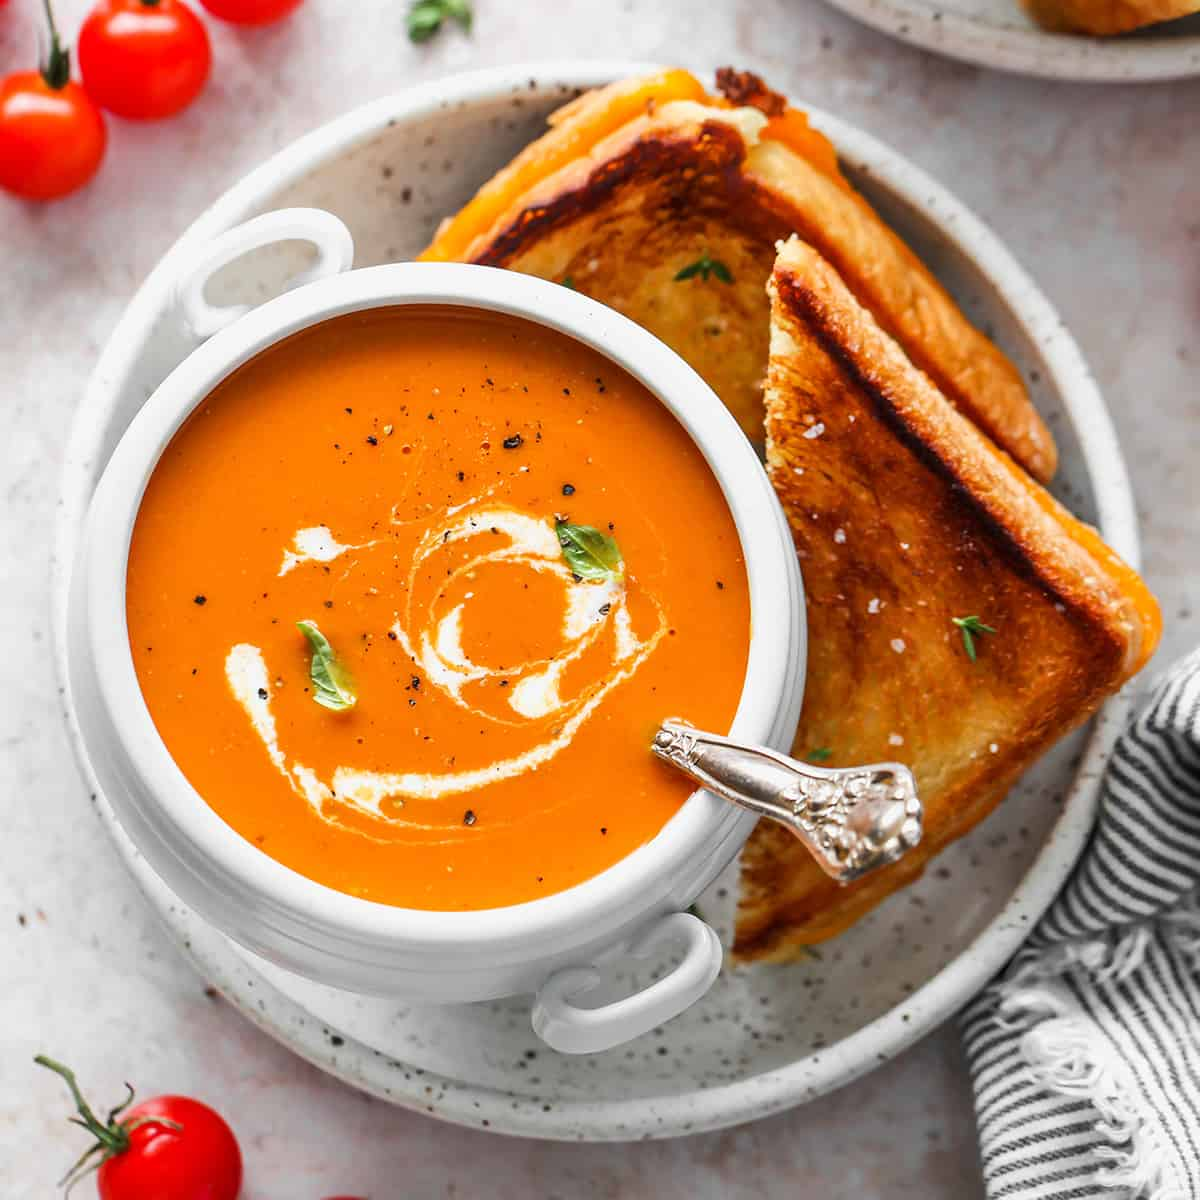 a bowl of Homemade Tomato Soup with grilled cheese on the side